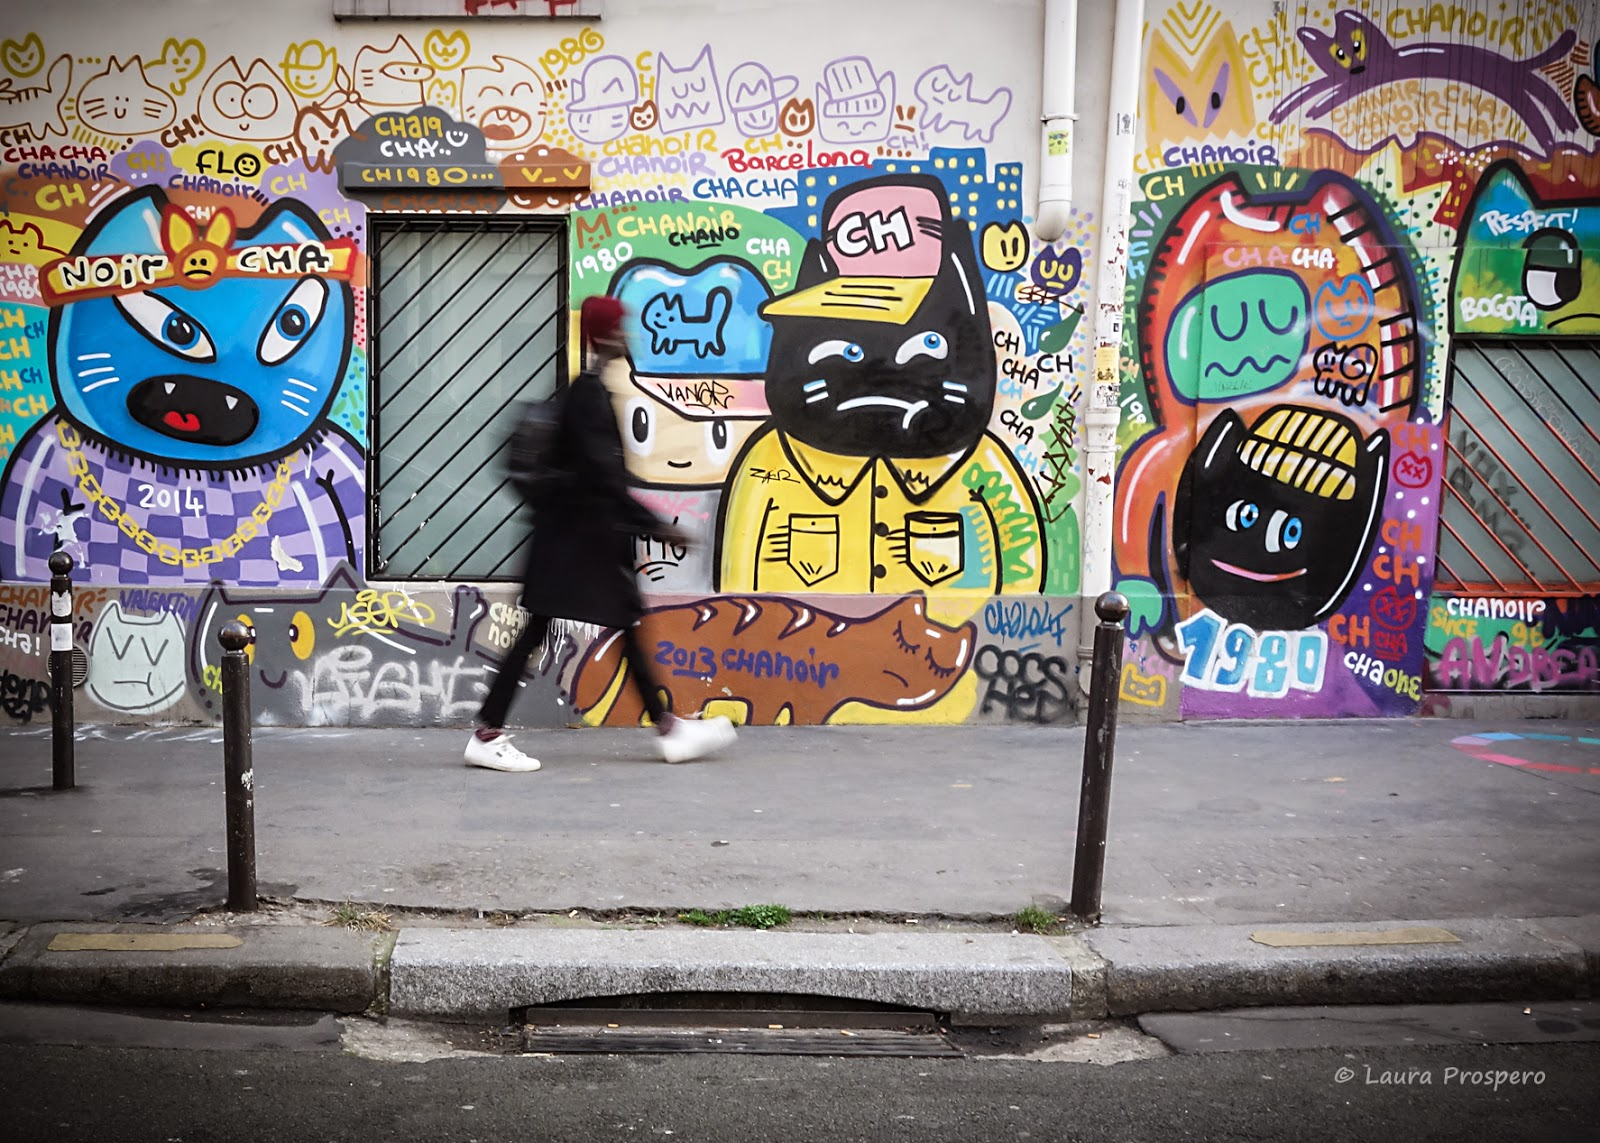 street art 10eme Paris - chatnoir